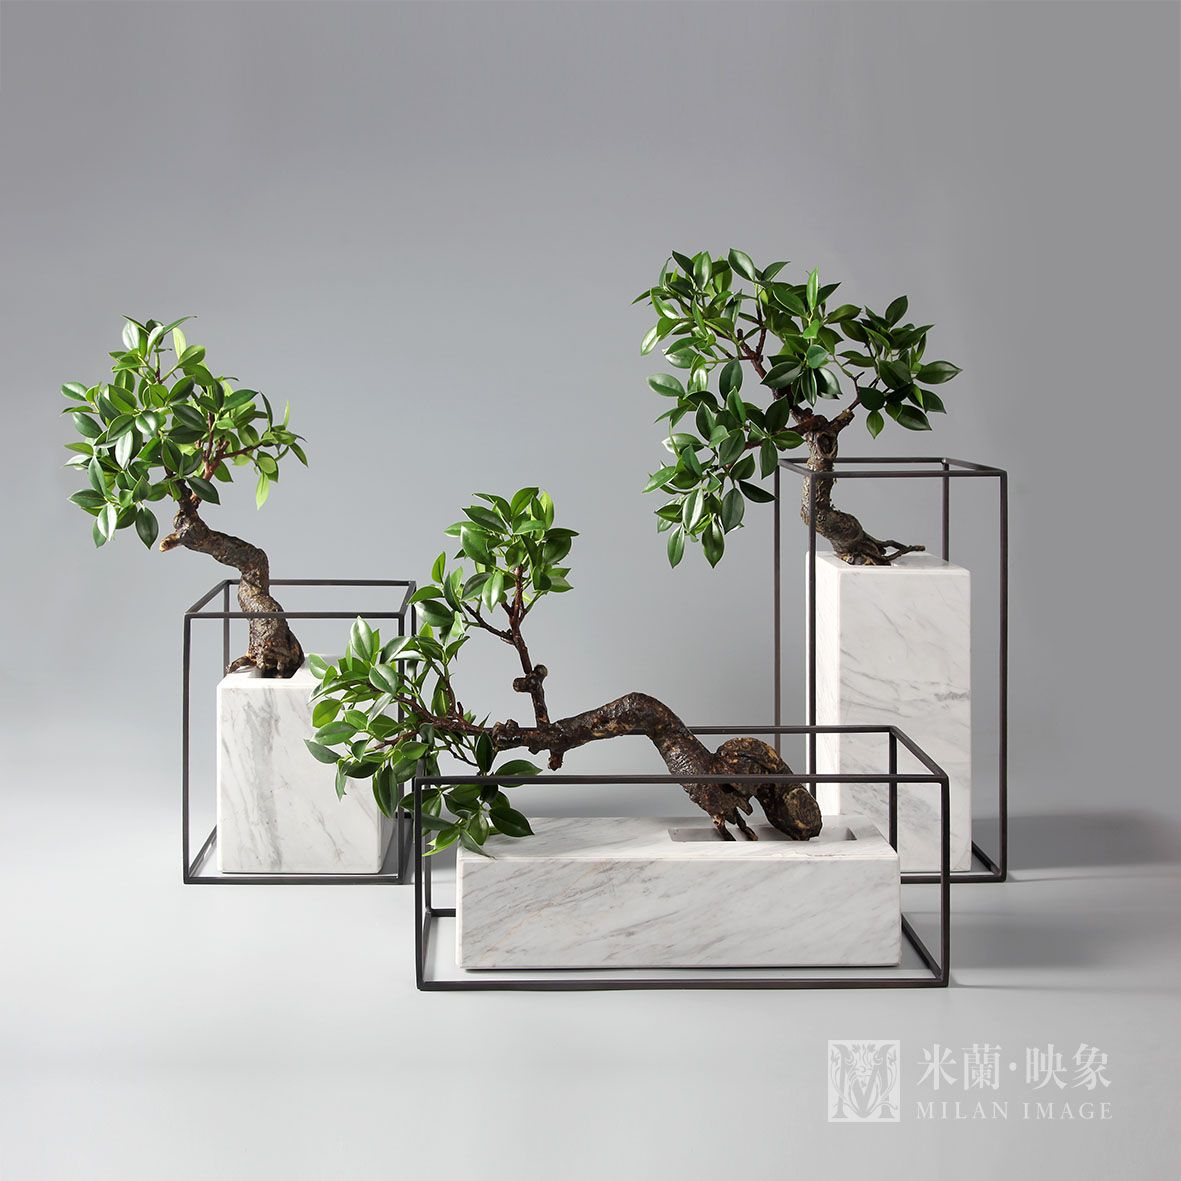 Luxury decor archives page 2 of 11 luxury interior plant stands in 2018 pinterest - Asiatische zimmerpflanzen ...